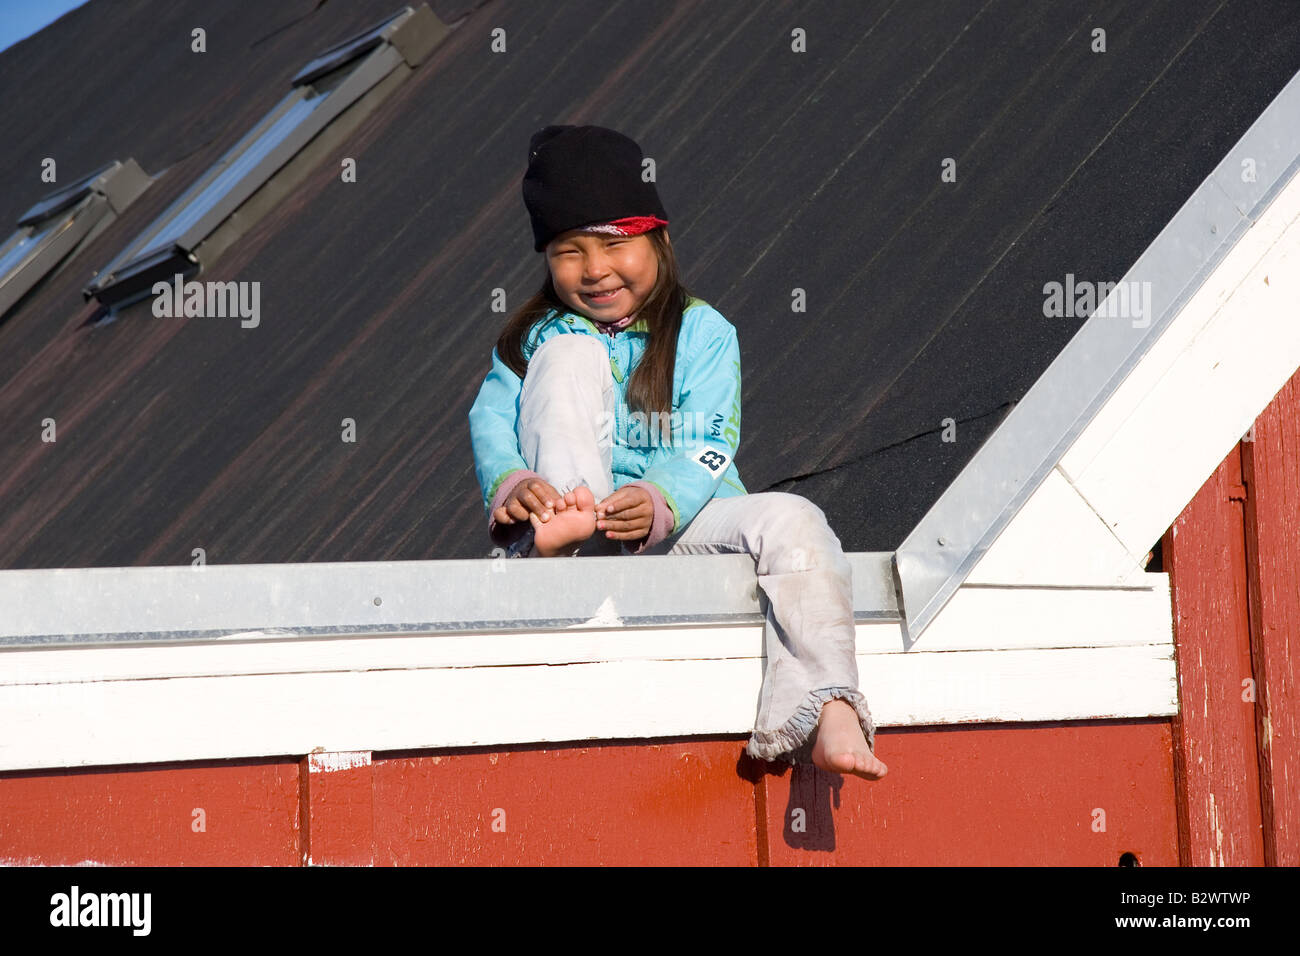 A young Inuit girl plays on the post office roof in the village of Ittoqqortoormiit, Scoresbysund, East Greenland - Stock Image